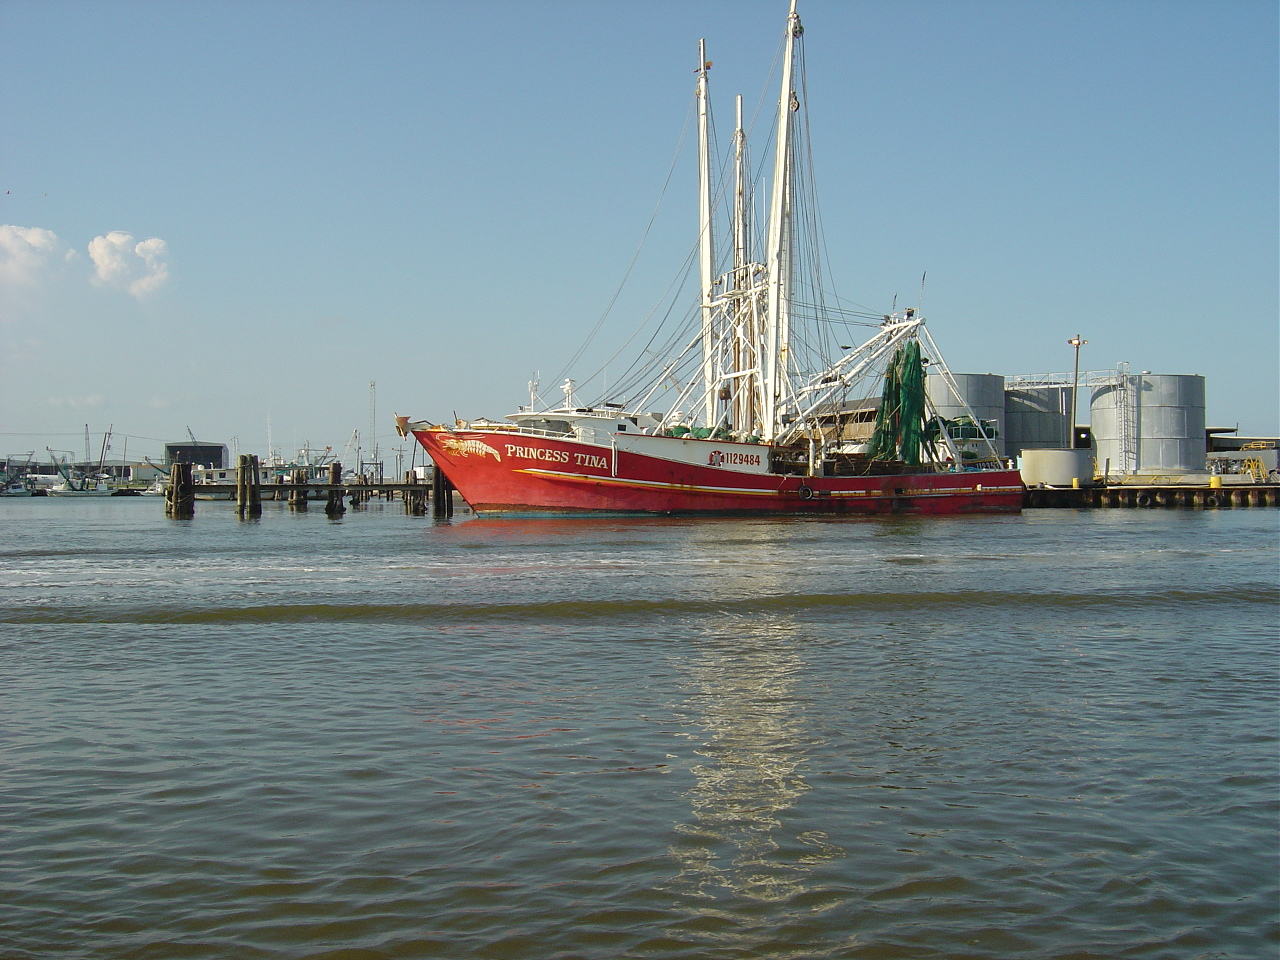 Gulf fishing new orleans wallpaper 585174 fanpop for Fishing new orleans